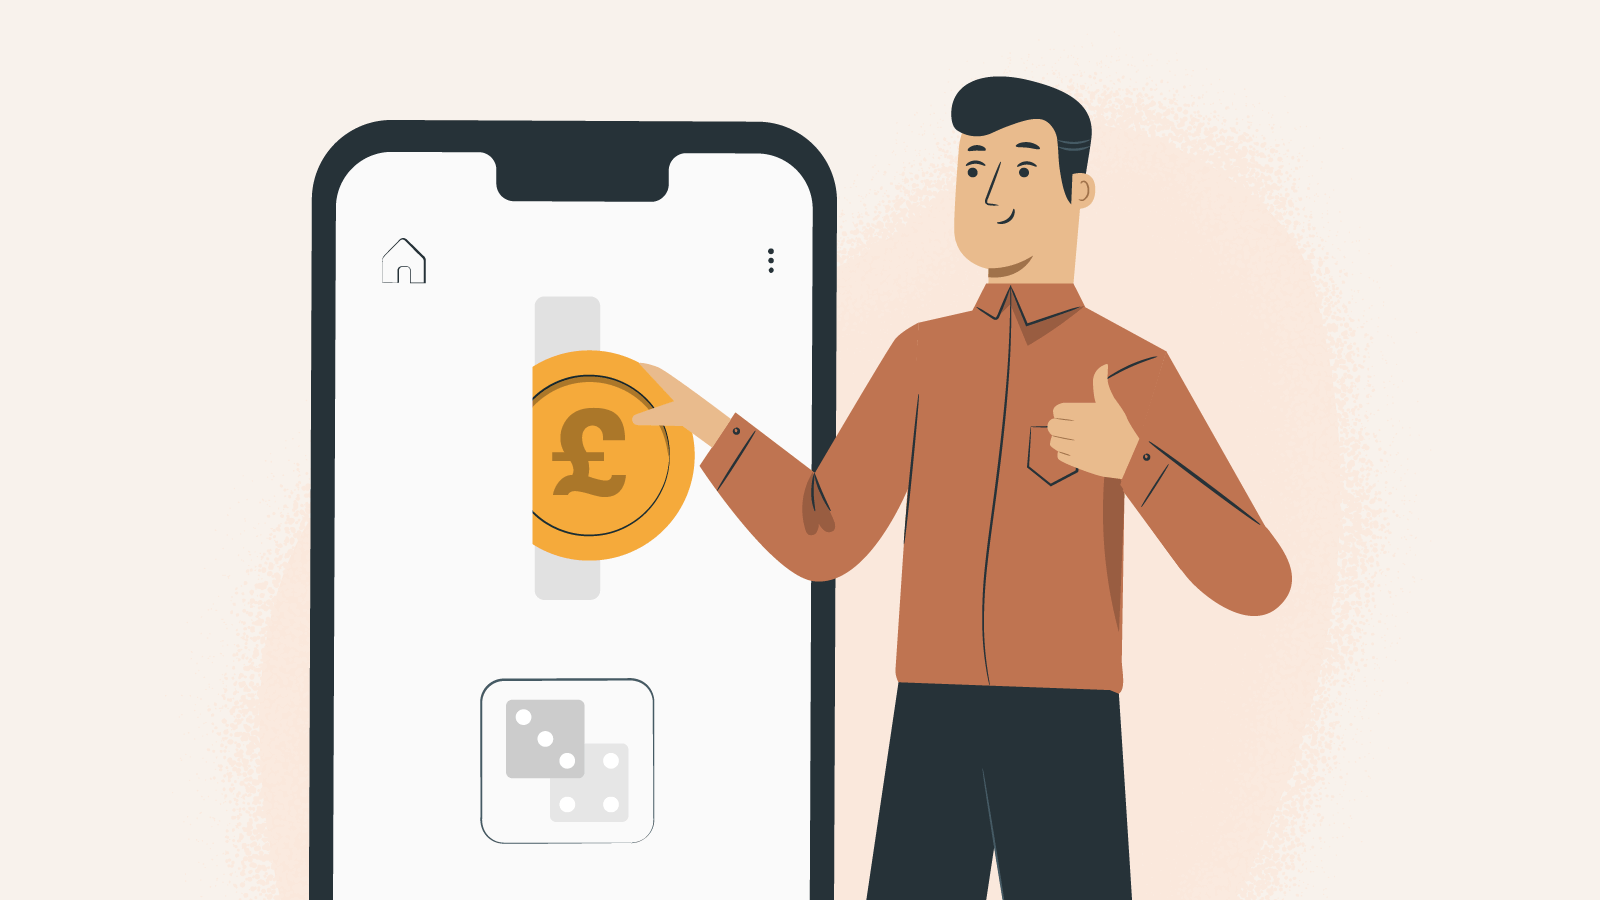 Your payment needs to be small